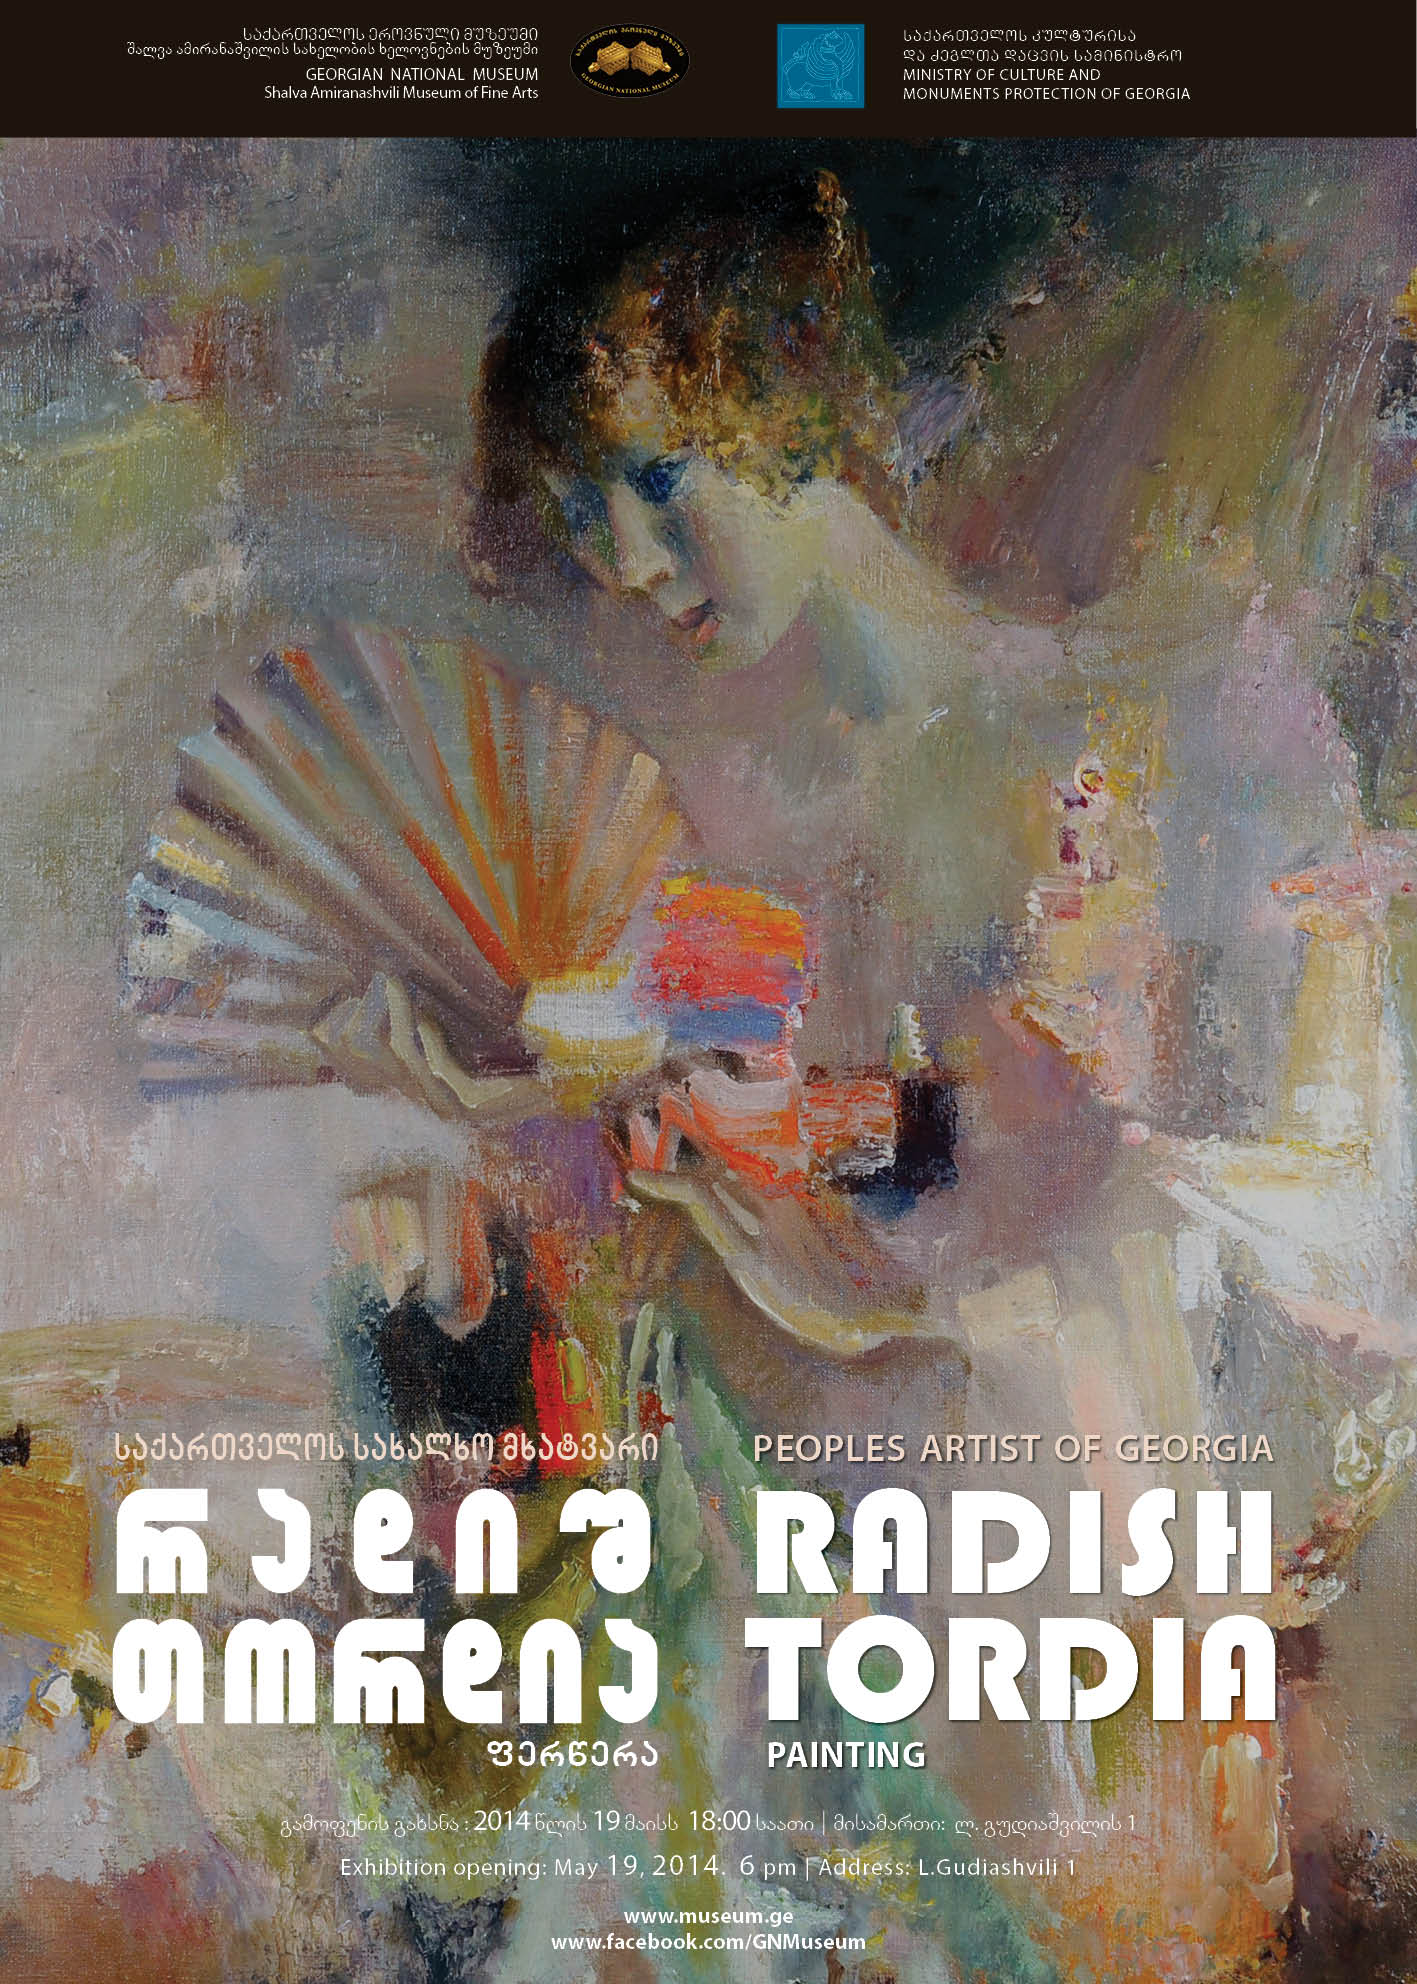 MUSEUMS WEEK - Personal exhibition of Radish Tordia's works